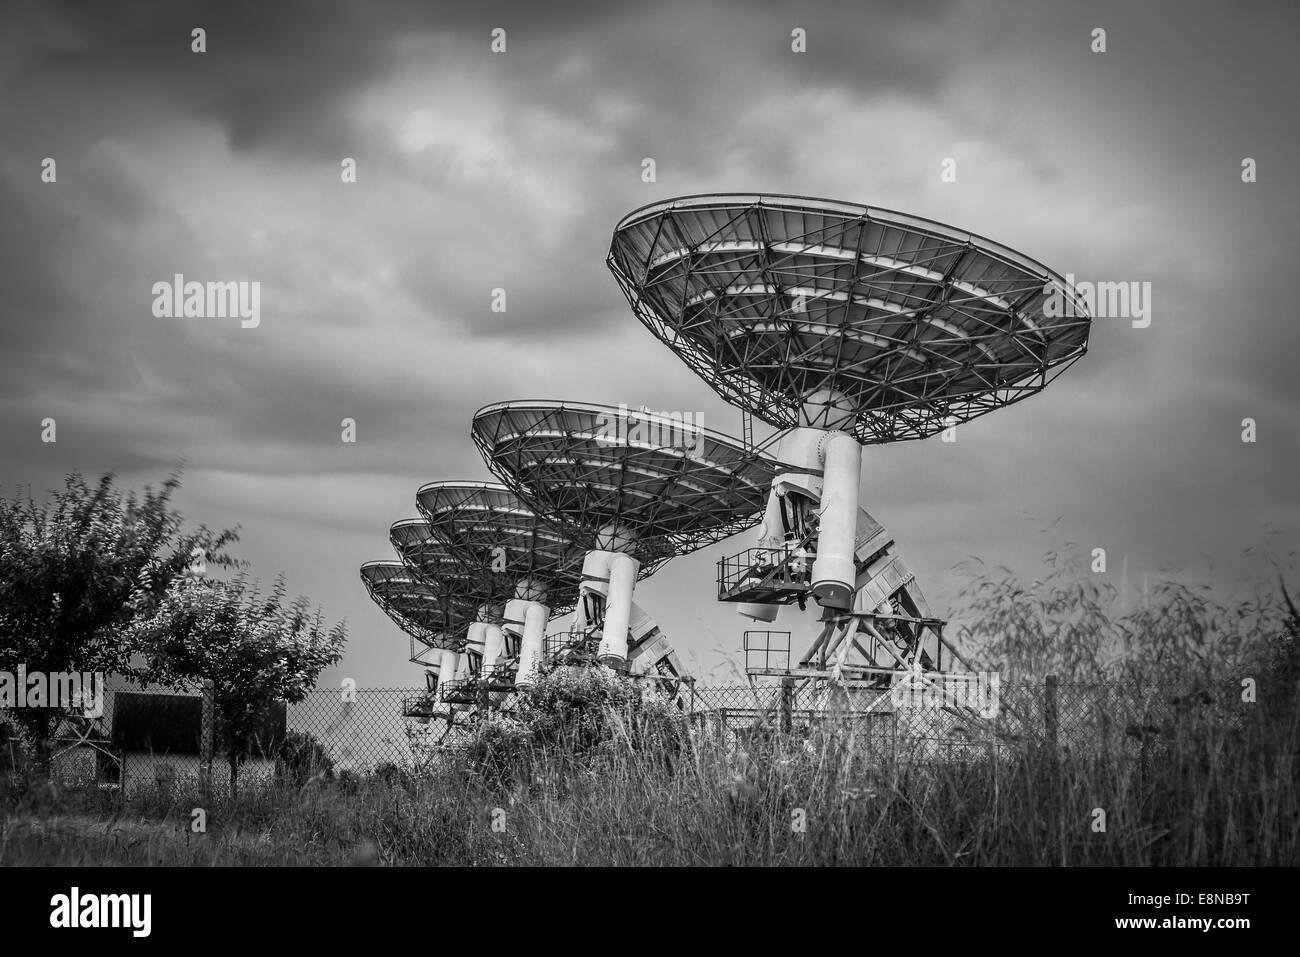 Radio telescope satellite dish array in a barley field before a storm in black and white - Stock Image